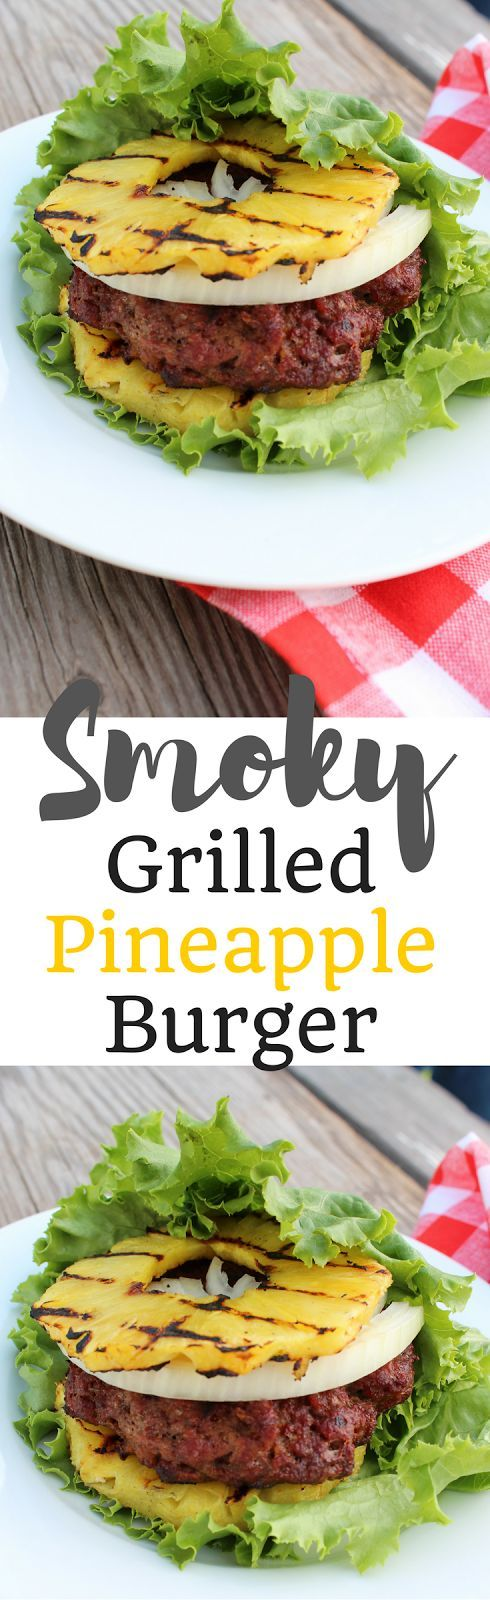 Not just a boring bunless burger. This Smoky Grilled Pineapple Burger is Paleo, Whole30, Low Carb, Gluten-free, Dairy-Free, Grain-Free, and Primal. And soooooo good!